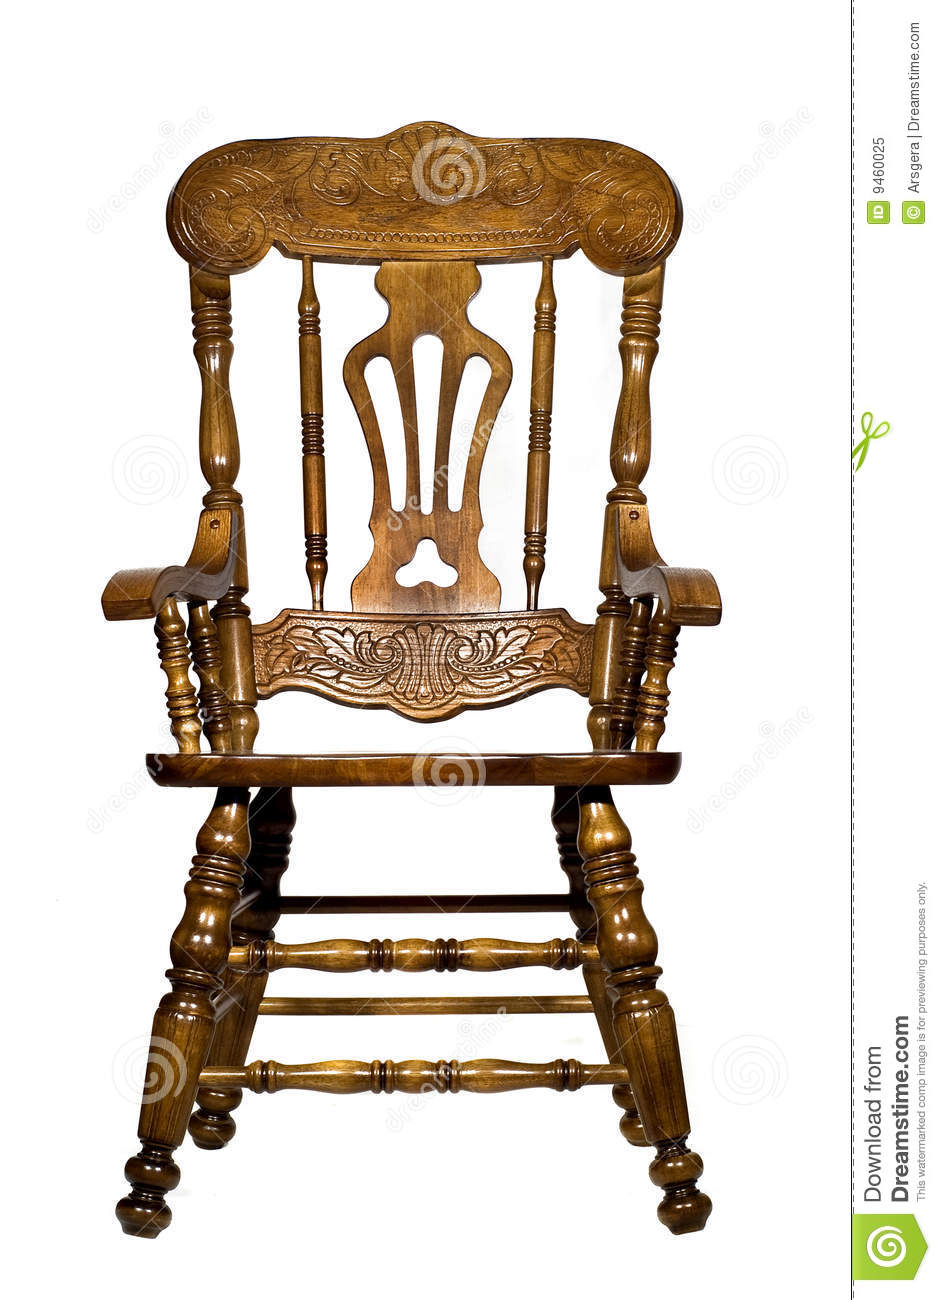 Wooden chair front view - Antique Chair Front Isolated View Wooden